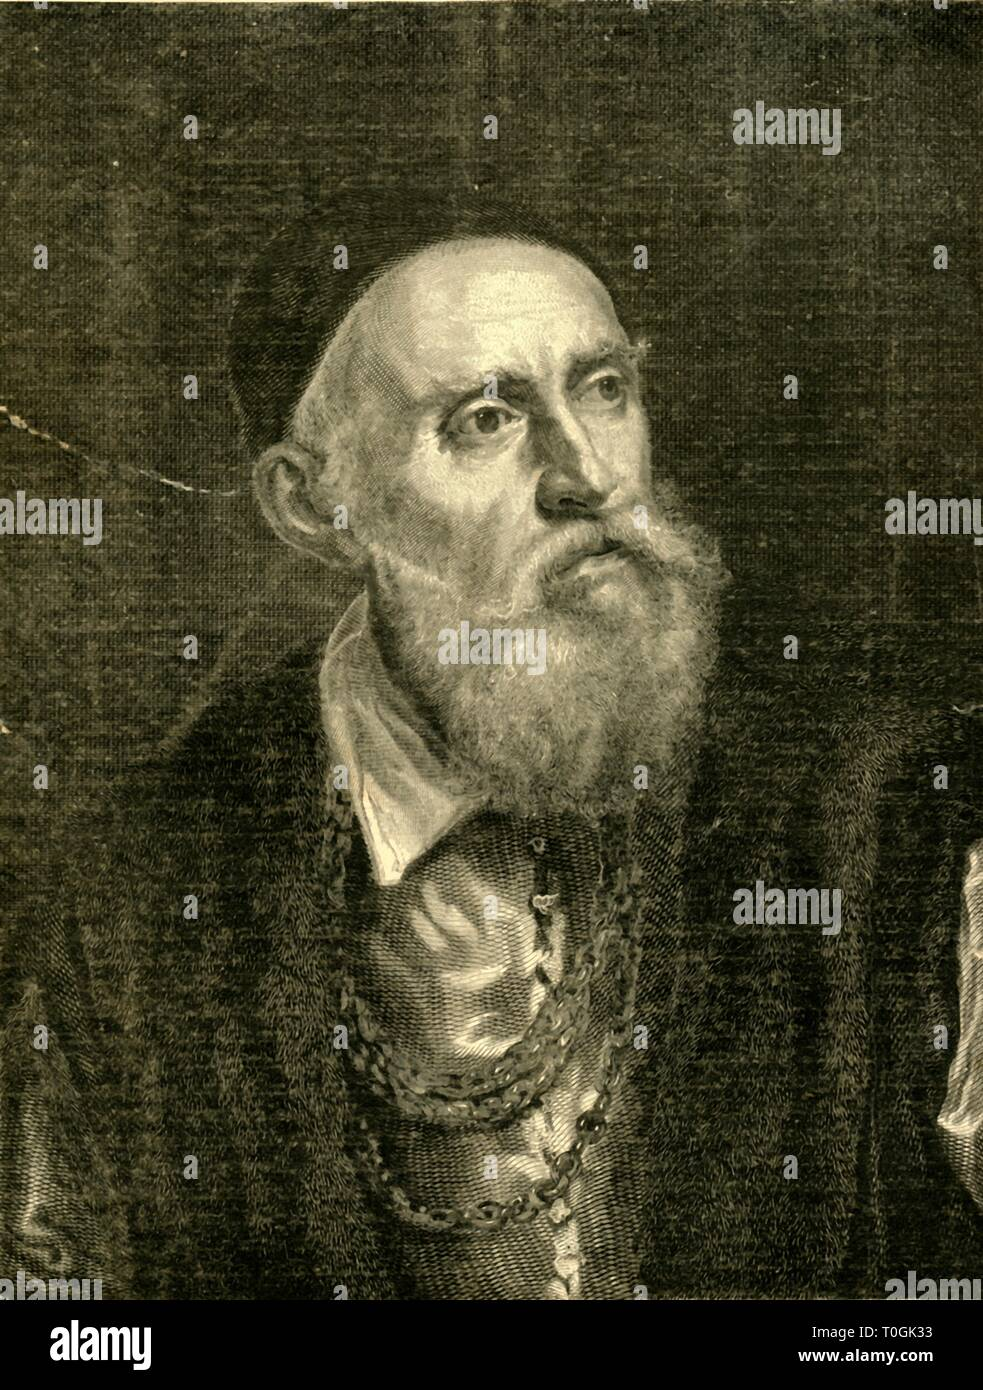 """'Titian's Portrait of Himself', 1882. Tiziano Vecelli or Tiziano Vecellio (c.1488/90-1576),[2] known in English as Titian, was an Italian painter, the most important member of the 16th-century Venetian school. From """"St. Nicholas: Volume IX. Part I., November 1881, to May 1882"""". [Scribner & Co., New York, 1882] - Stock Image"""